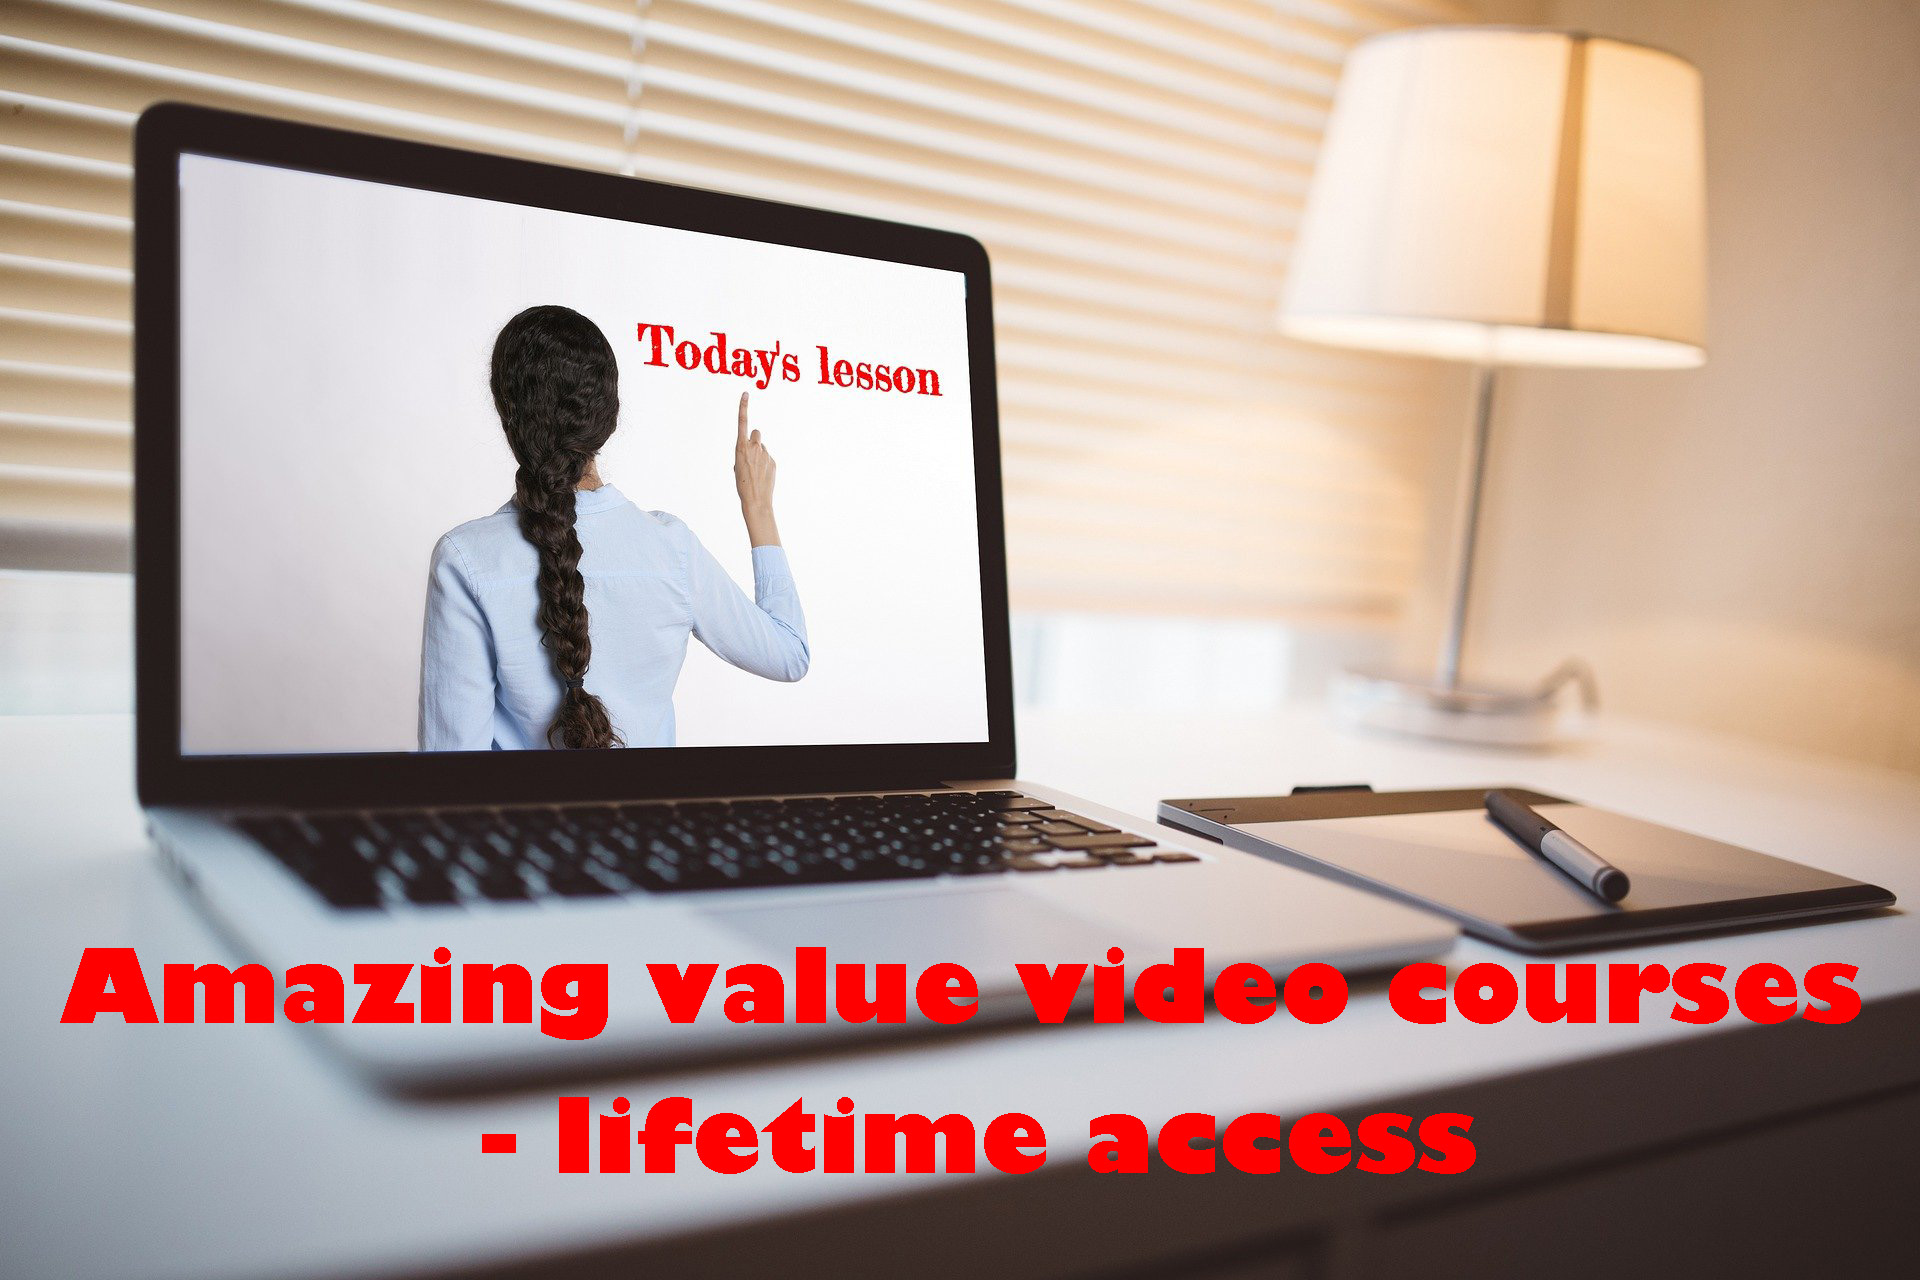 """Laptop open to show the back of a woman with a long plait, pointing at red text reading """"Today's lesson"""". Overlay of red text reading, """"Amazing value video courses - lifetime access""""."""""""